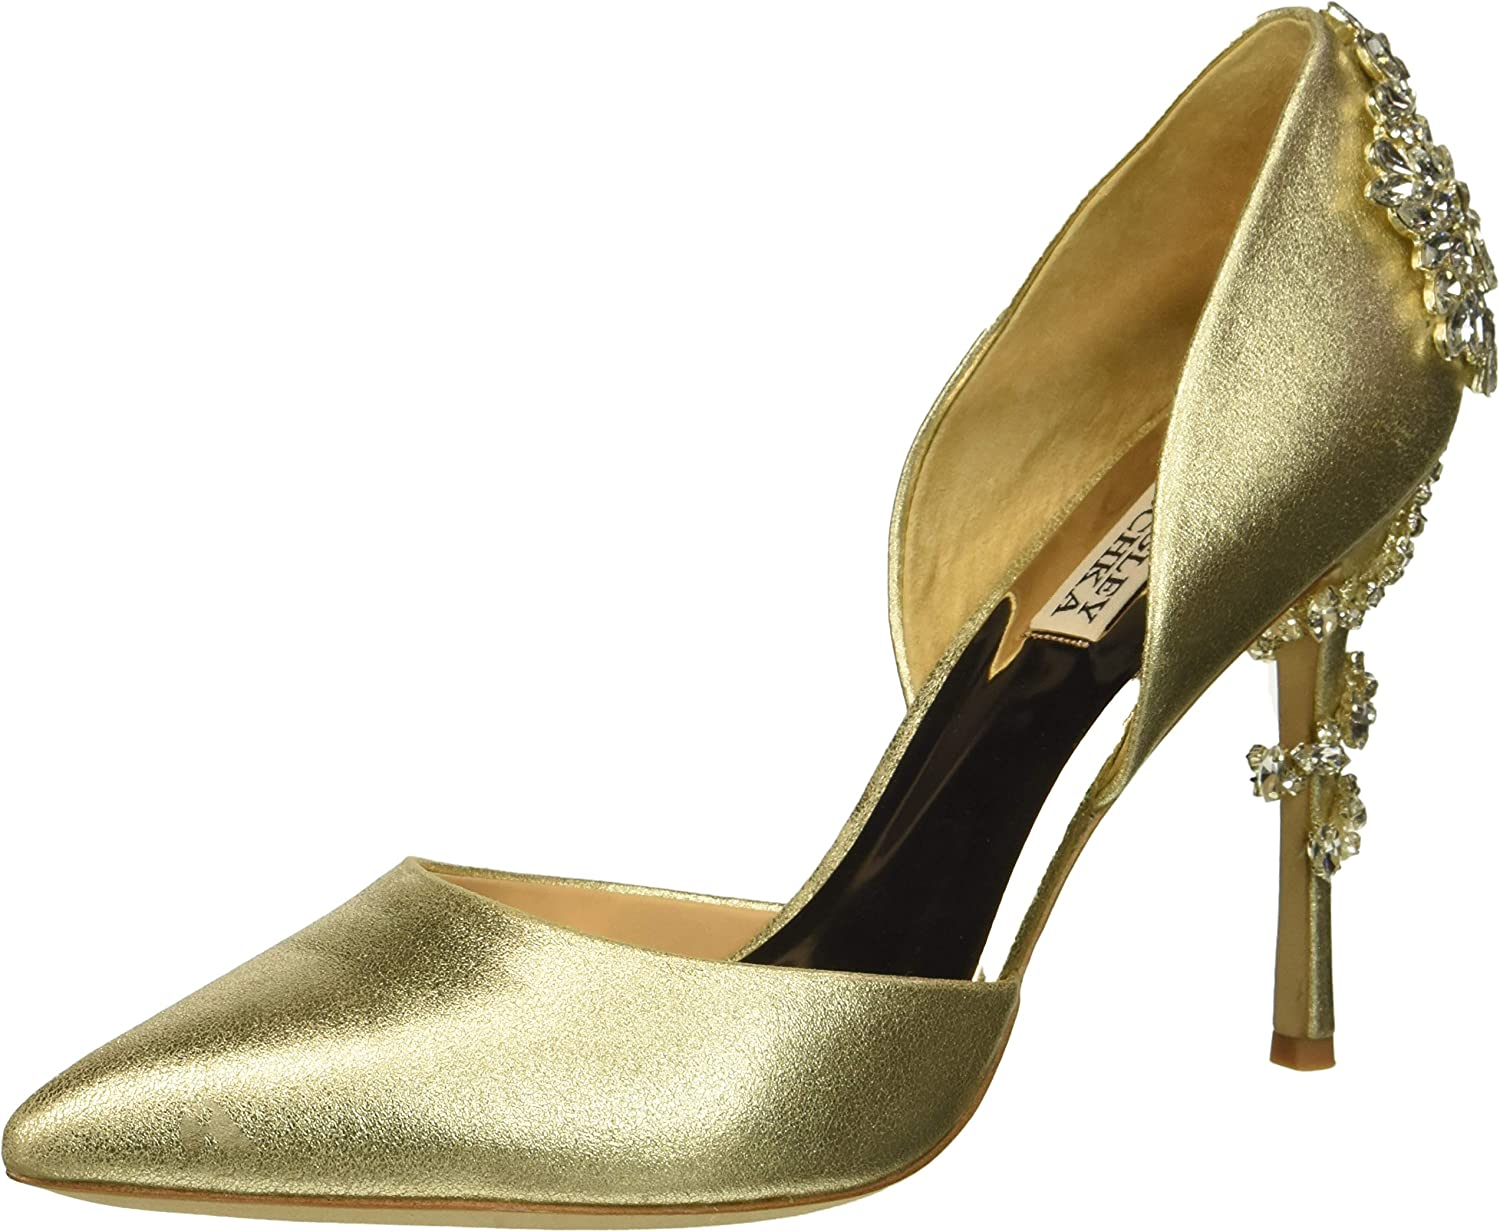 Badgley Mischka Damen Damen Vogue Ii, Platino Metallic Suede, 38.5 EU  beste Qualität